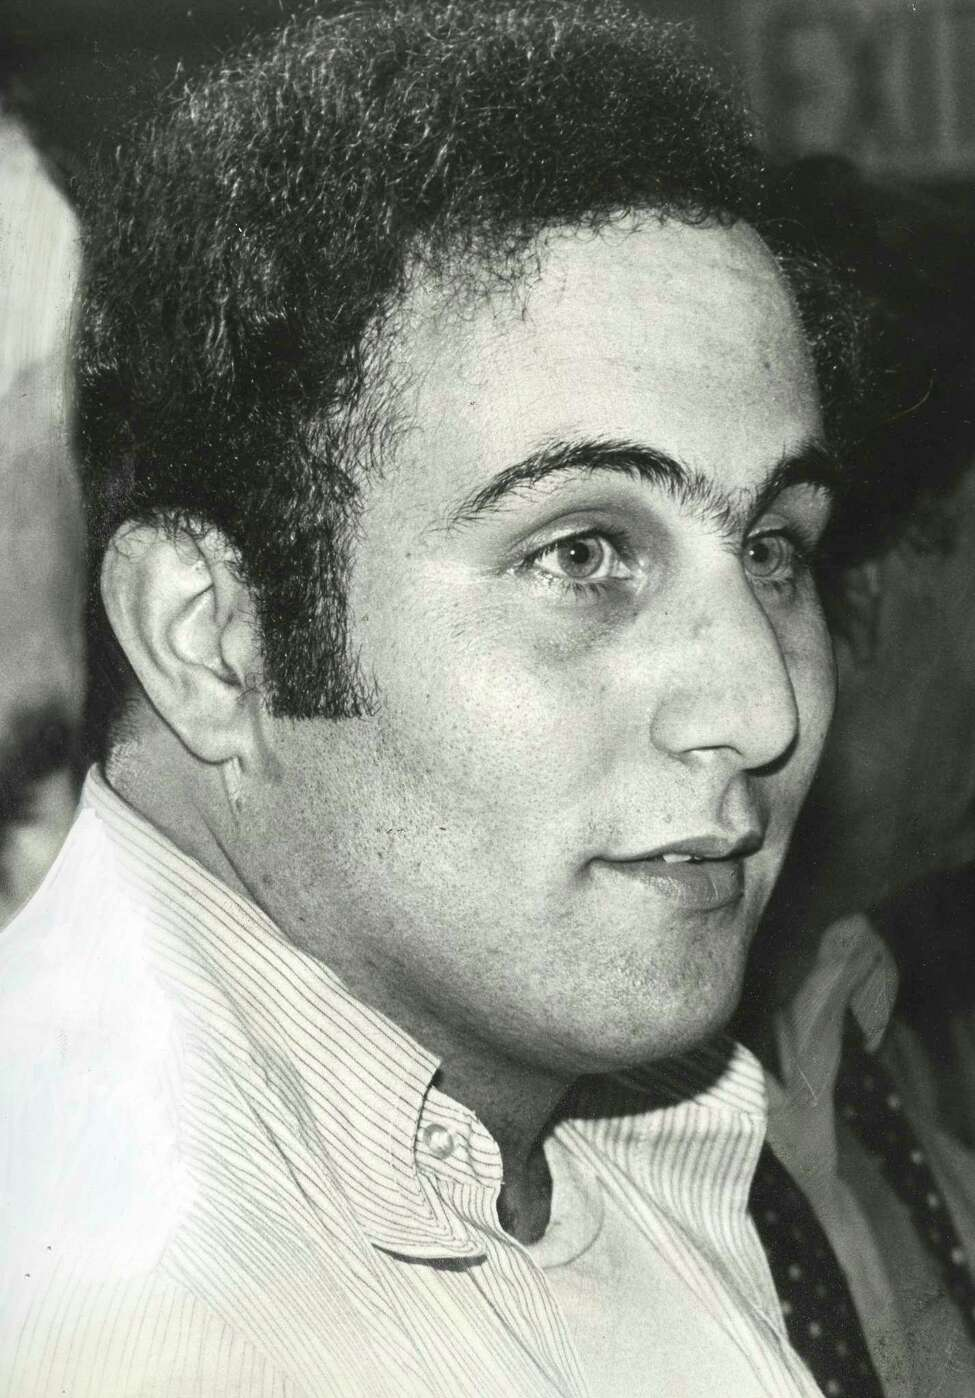 FILE -- David Berkowitz, the .44-caliber killer, in police custody in New York, Aug. 11, 1977. (Fred R. Conrad/The New York Times)